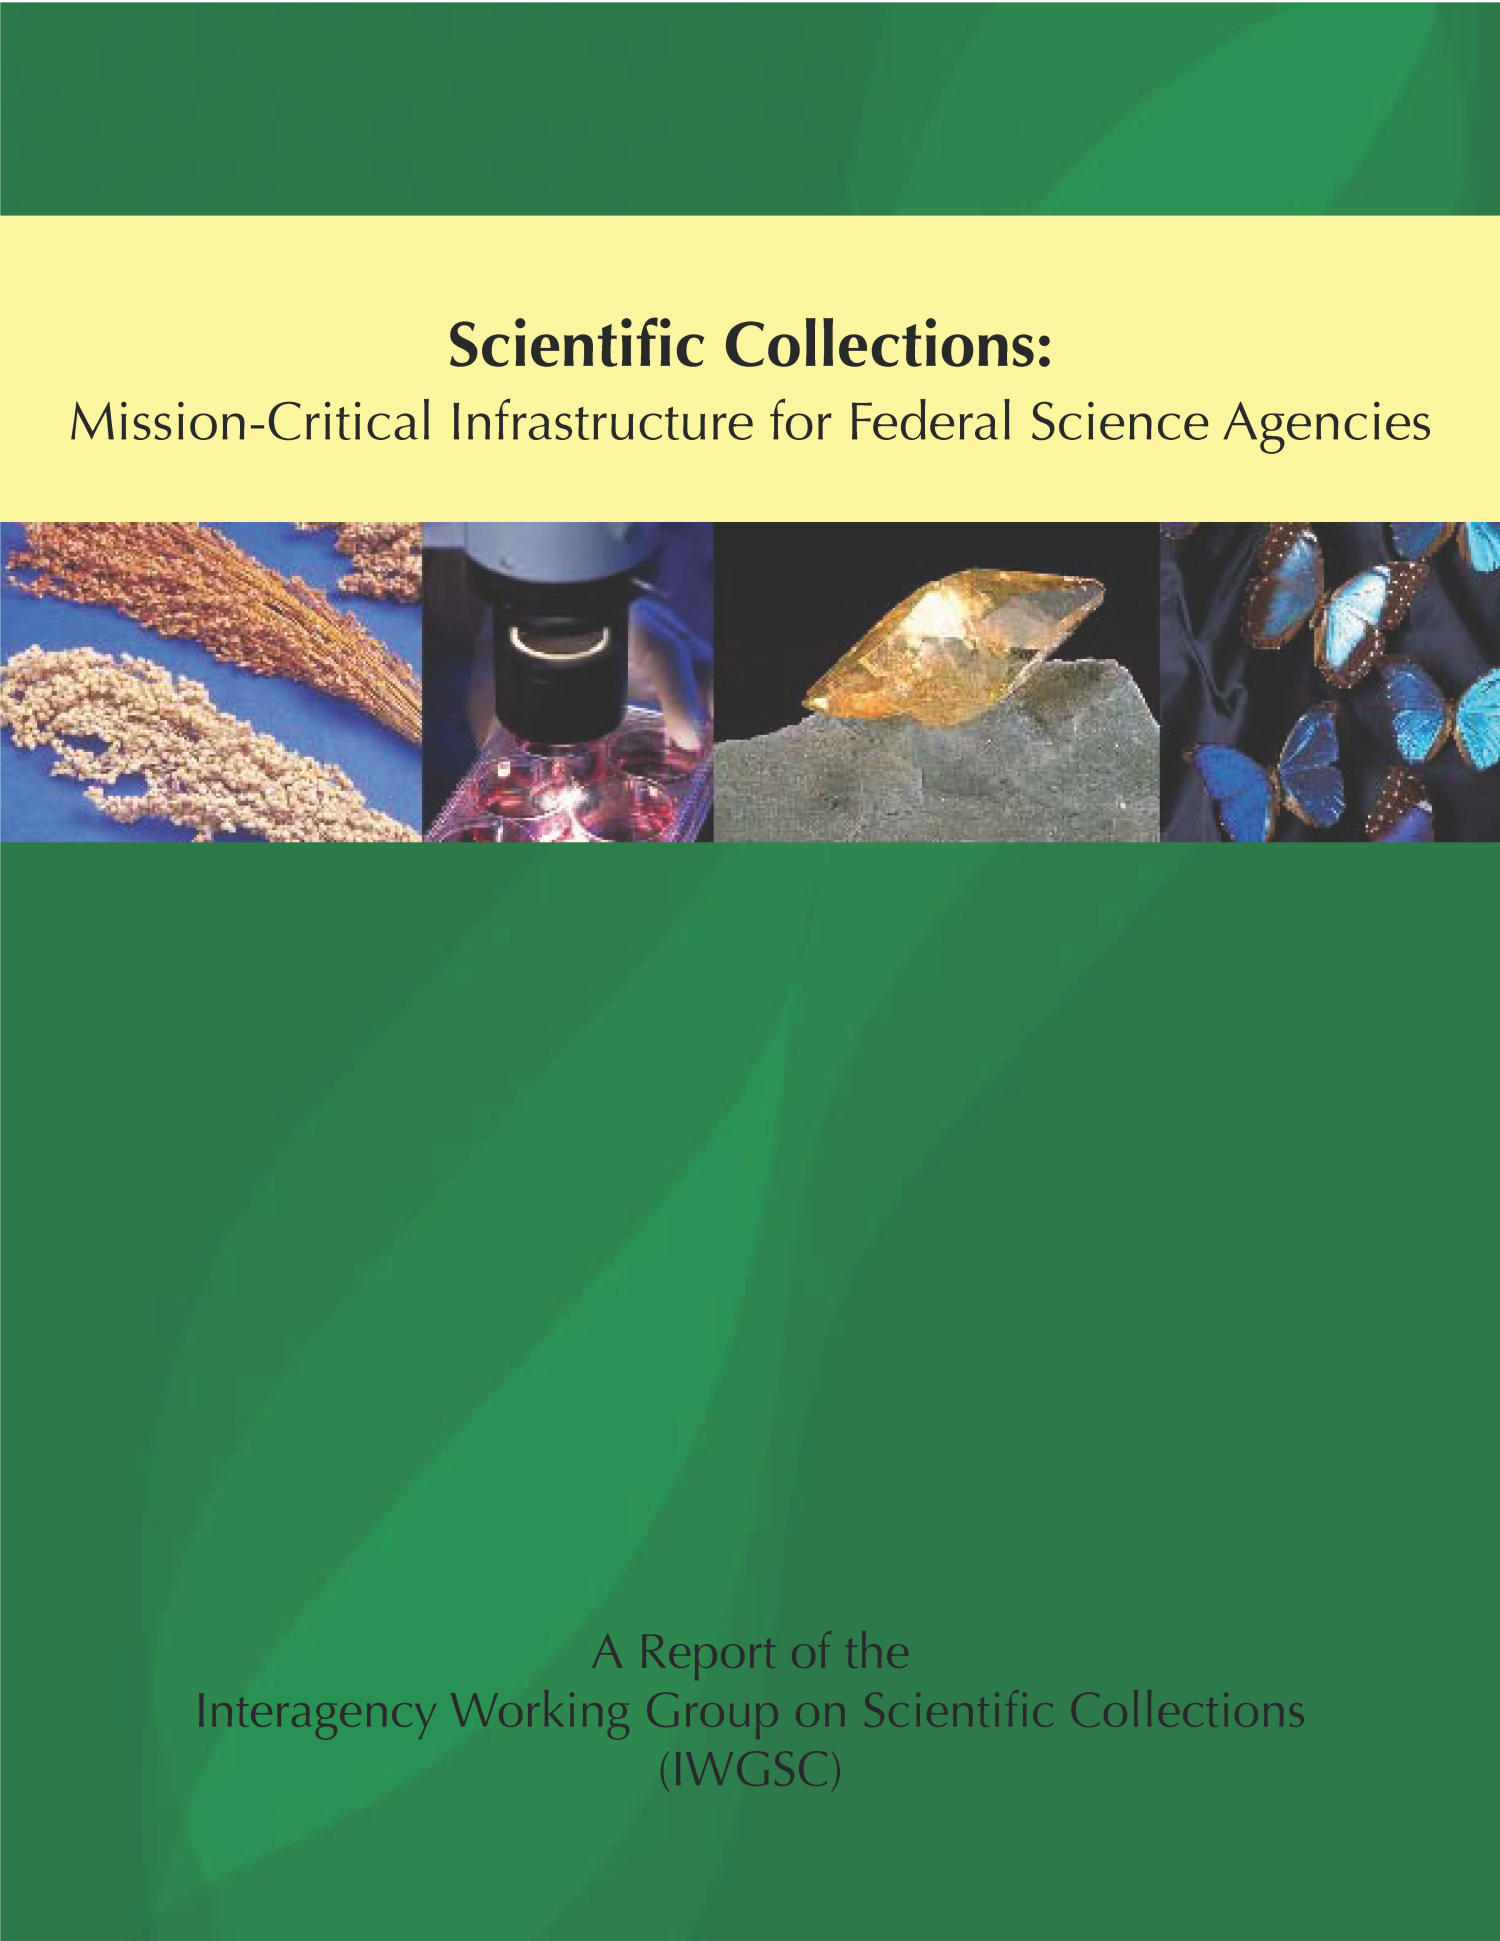 Scientific Collections: Mission-Critical Infrastructure for Federal Science Agencies                                                                                                      Front Cover